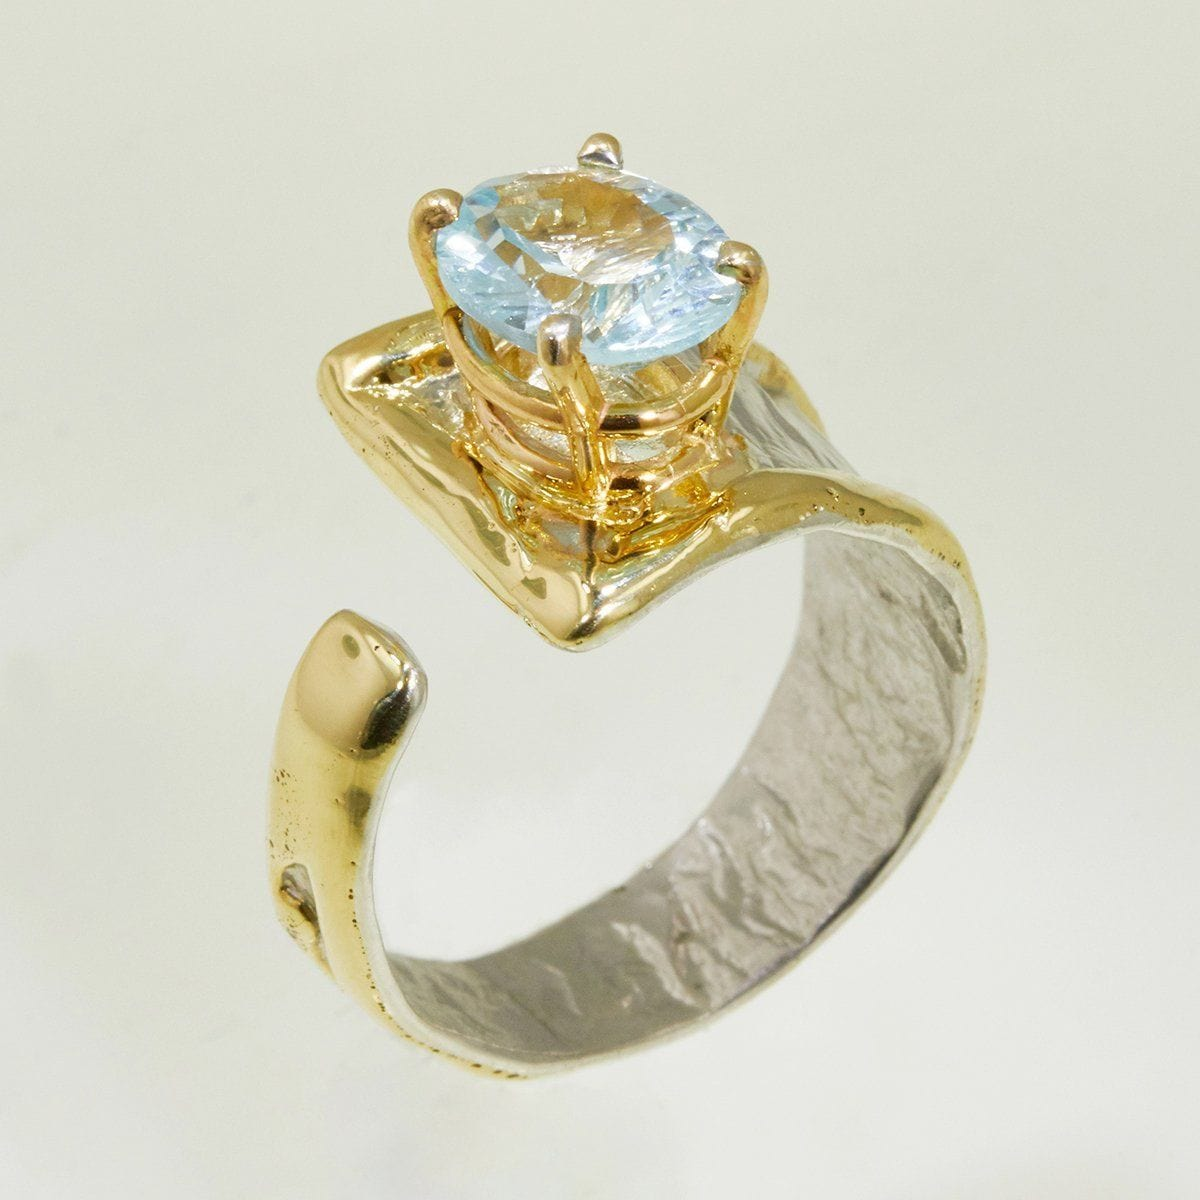 14K Gold & Crystalline Silver Sky Blue Topaz Ring - 32860-Fusion Designs-Renee Taylor Gallery